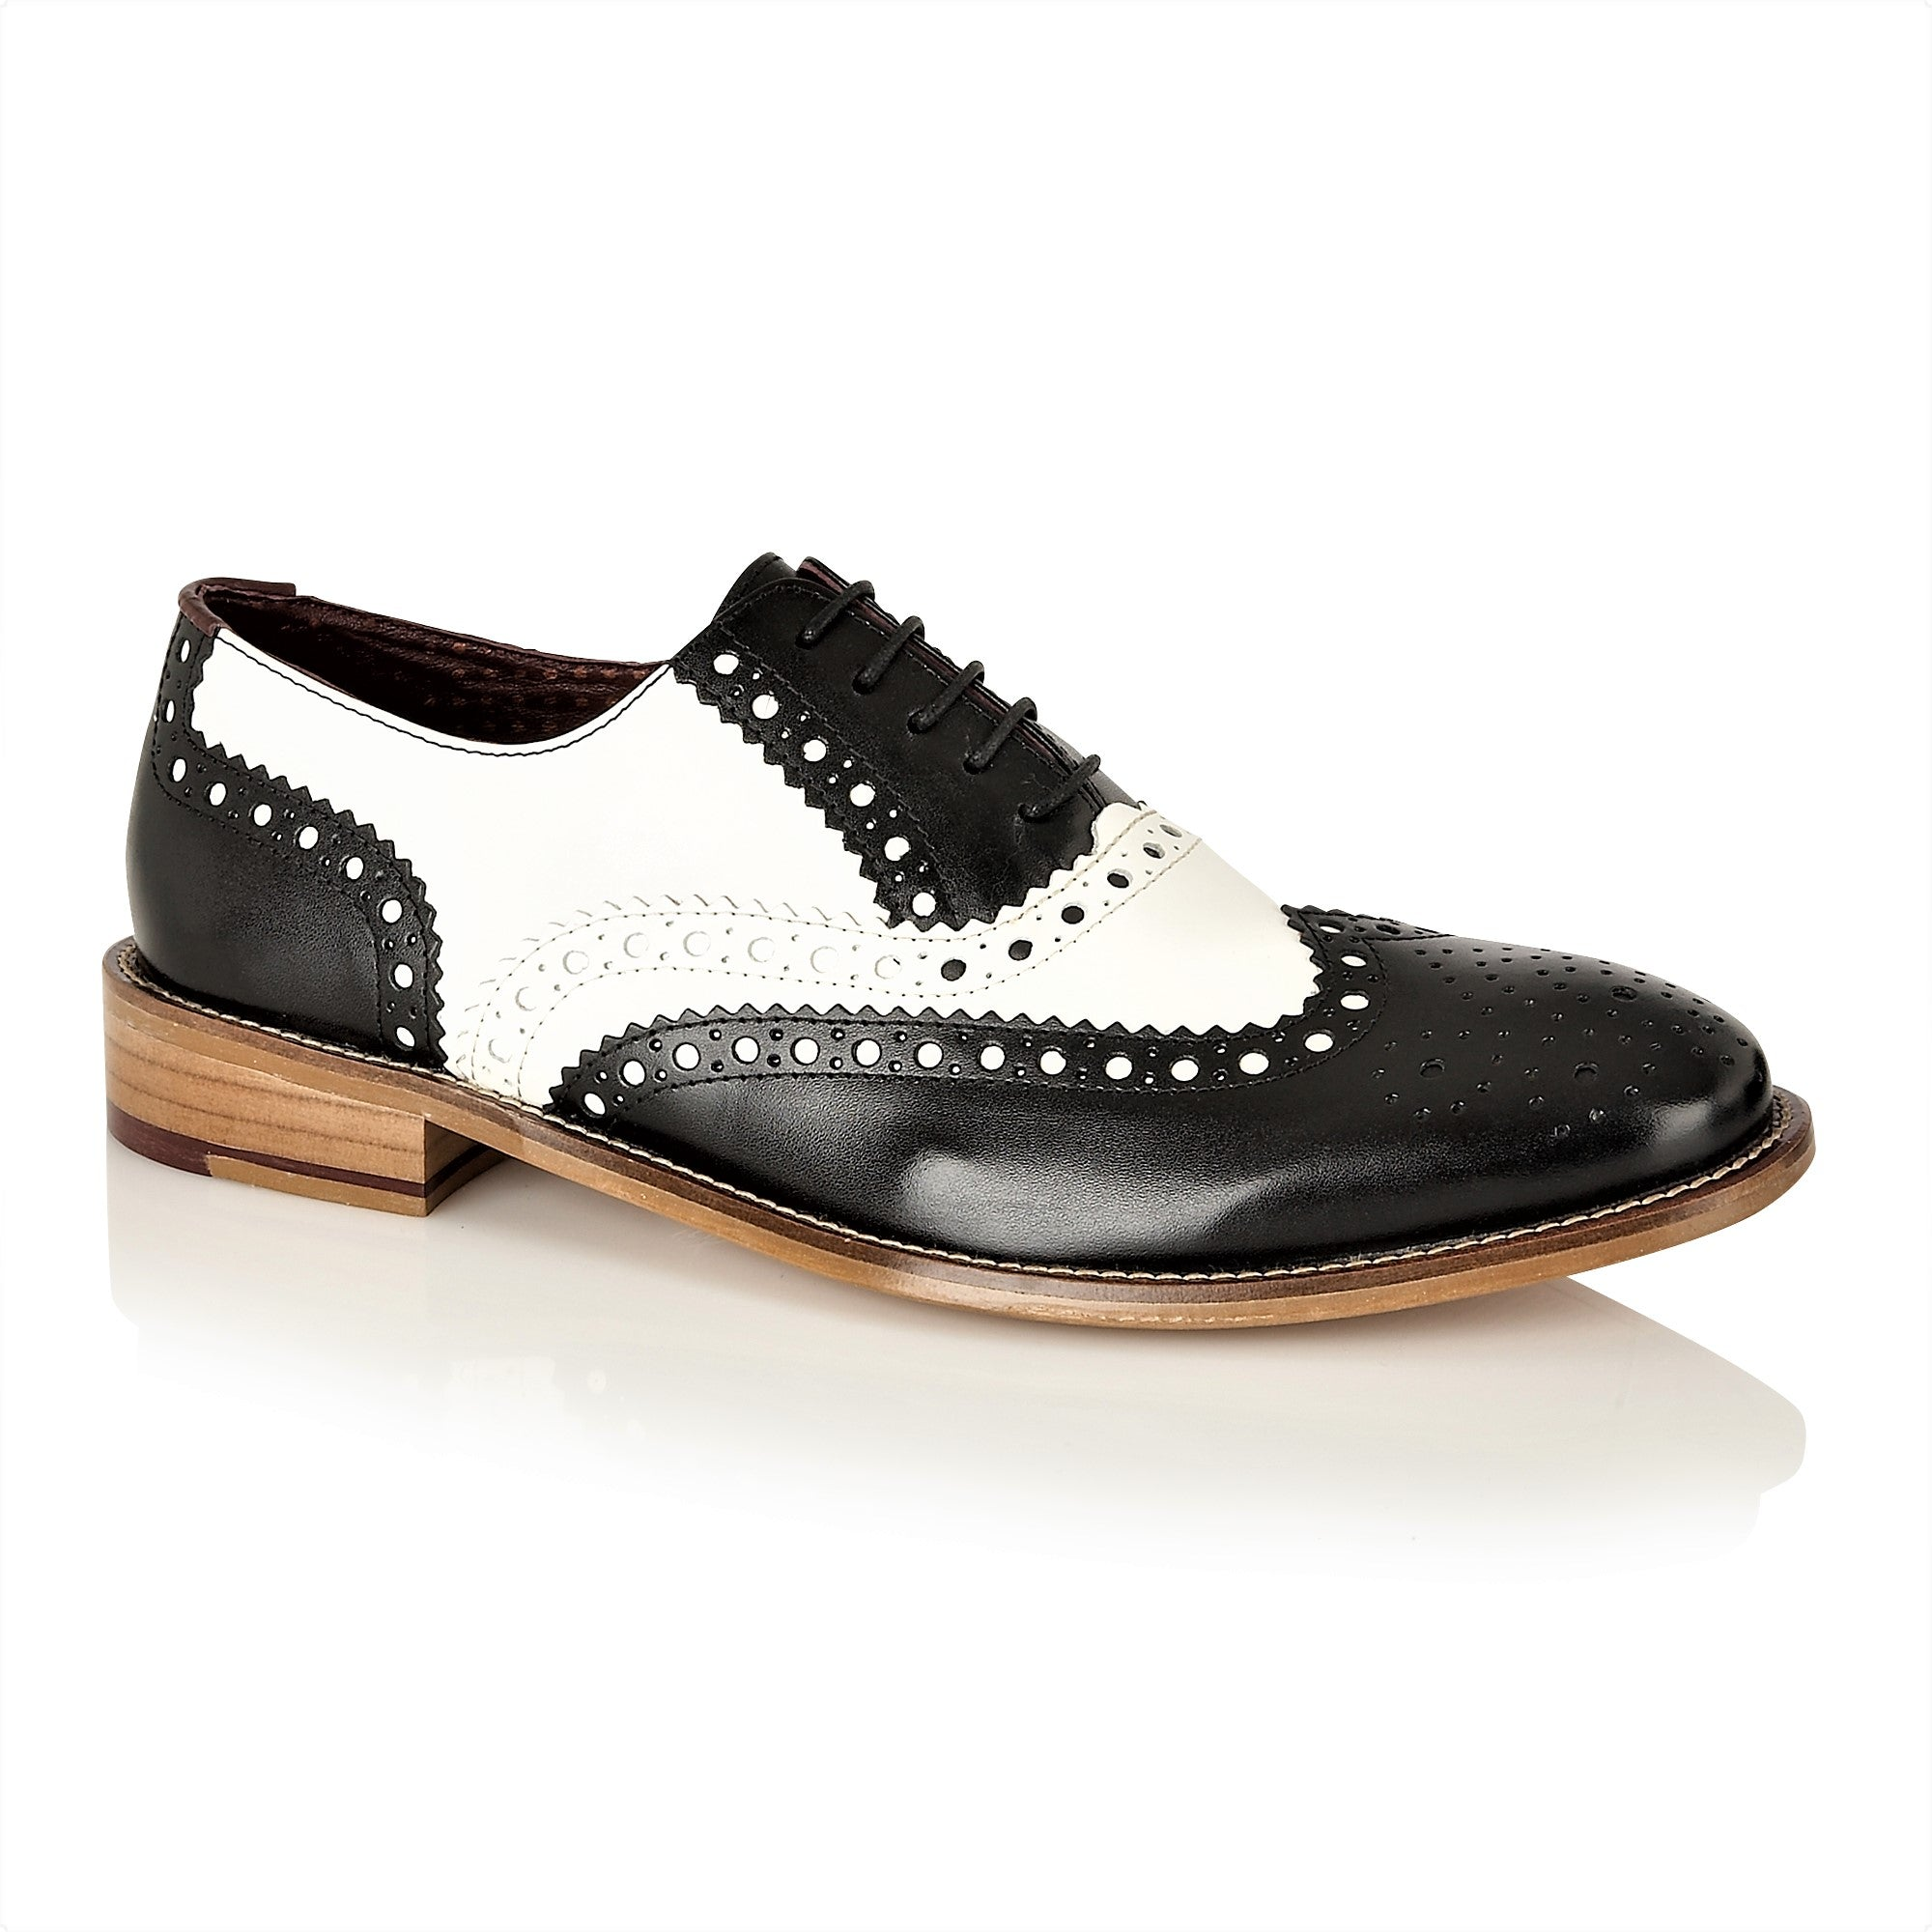 Gatsby Leather Brogue Black/White, Shoes, London Brogues  - London Brogues